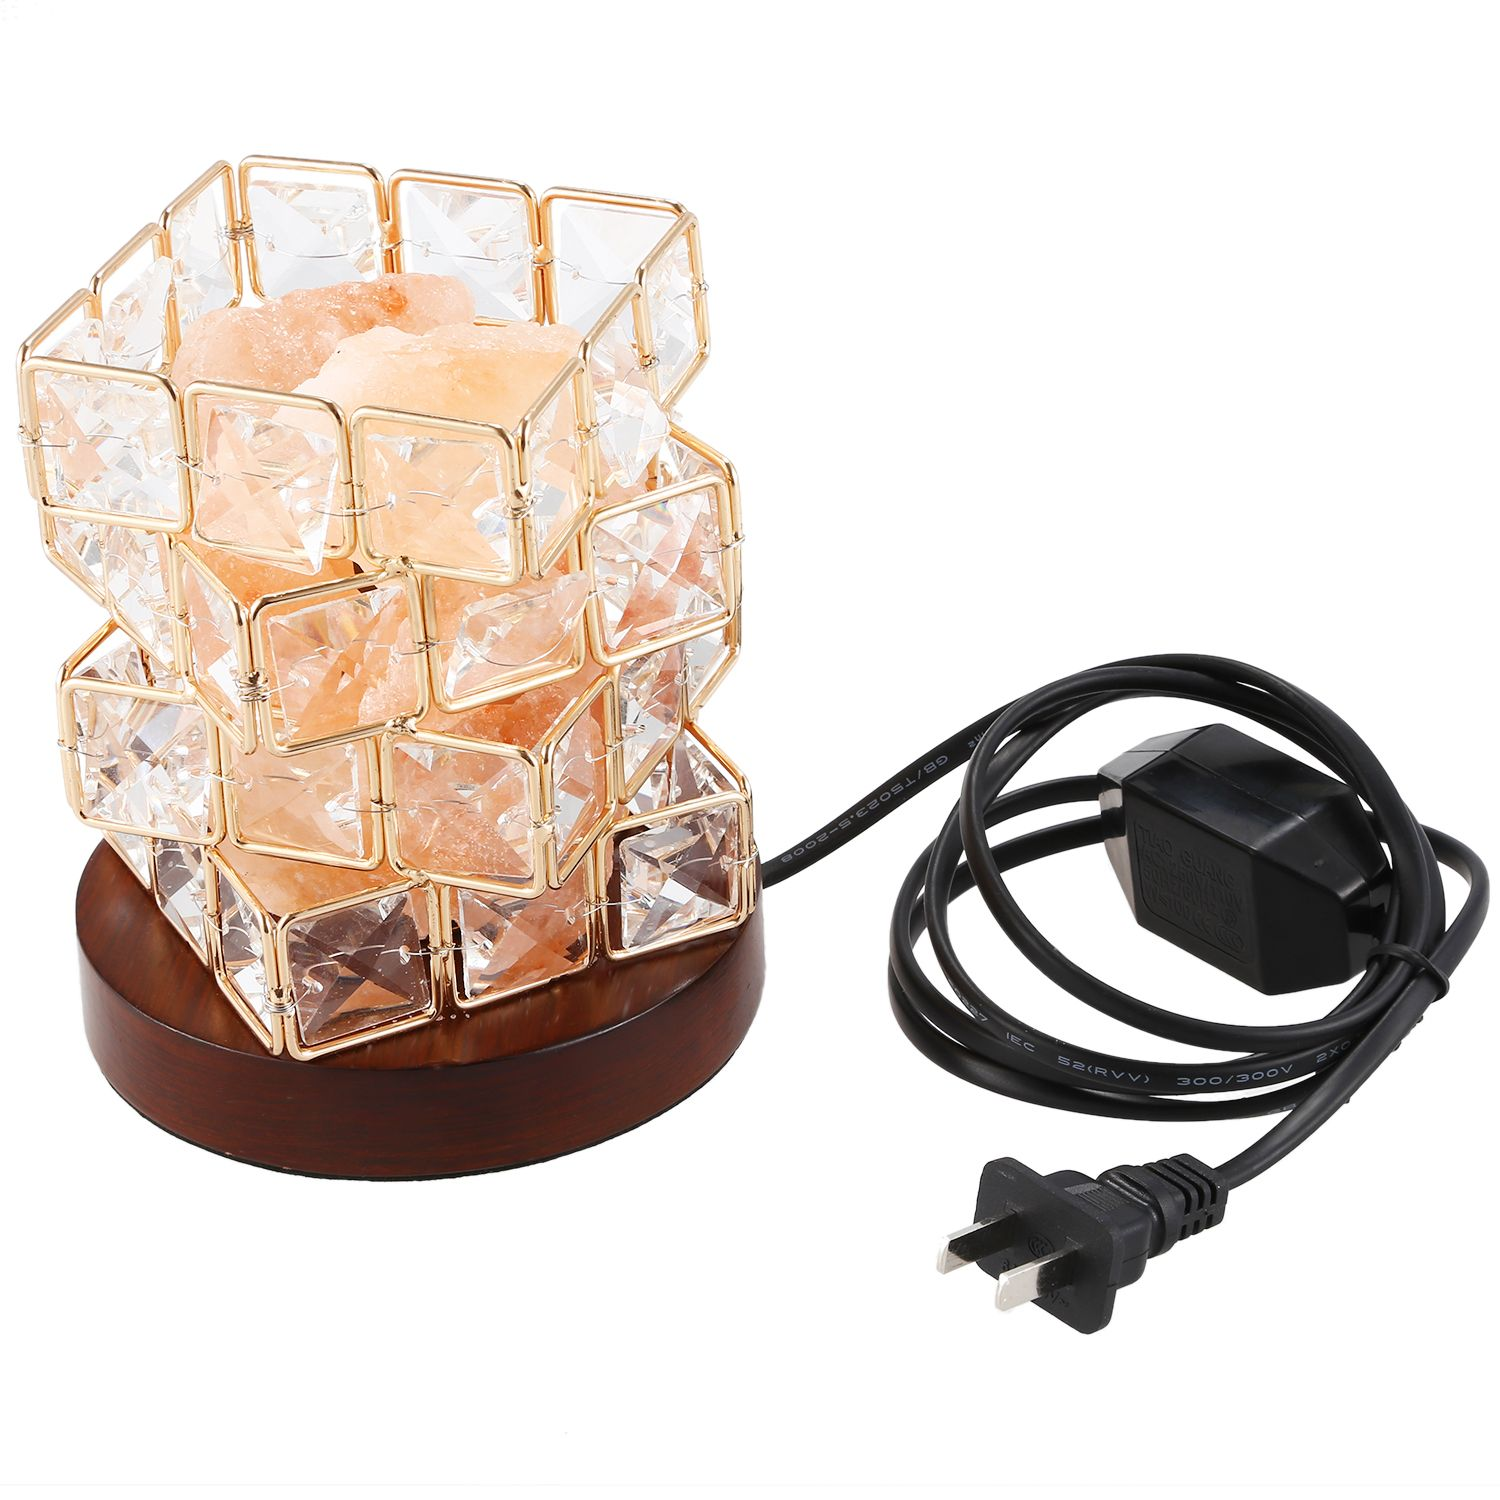 Himalayan Salt Lamp,Natural Hymalain Salt Rock in Crystal Basket with Dimmer Switch,UL-Listed Cord &Wood Base US Plug